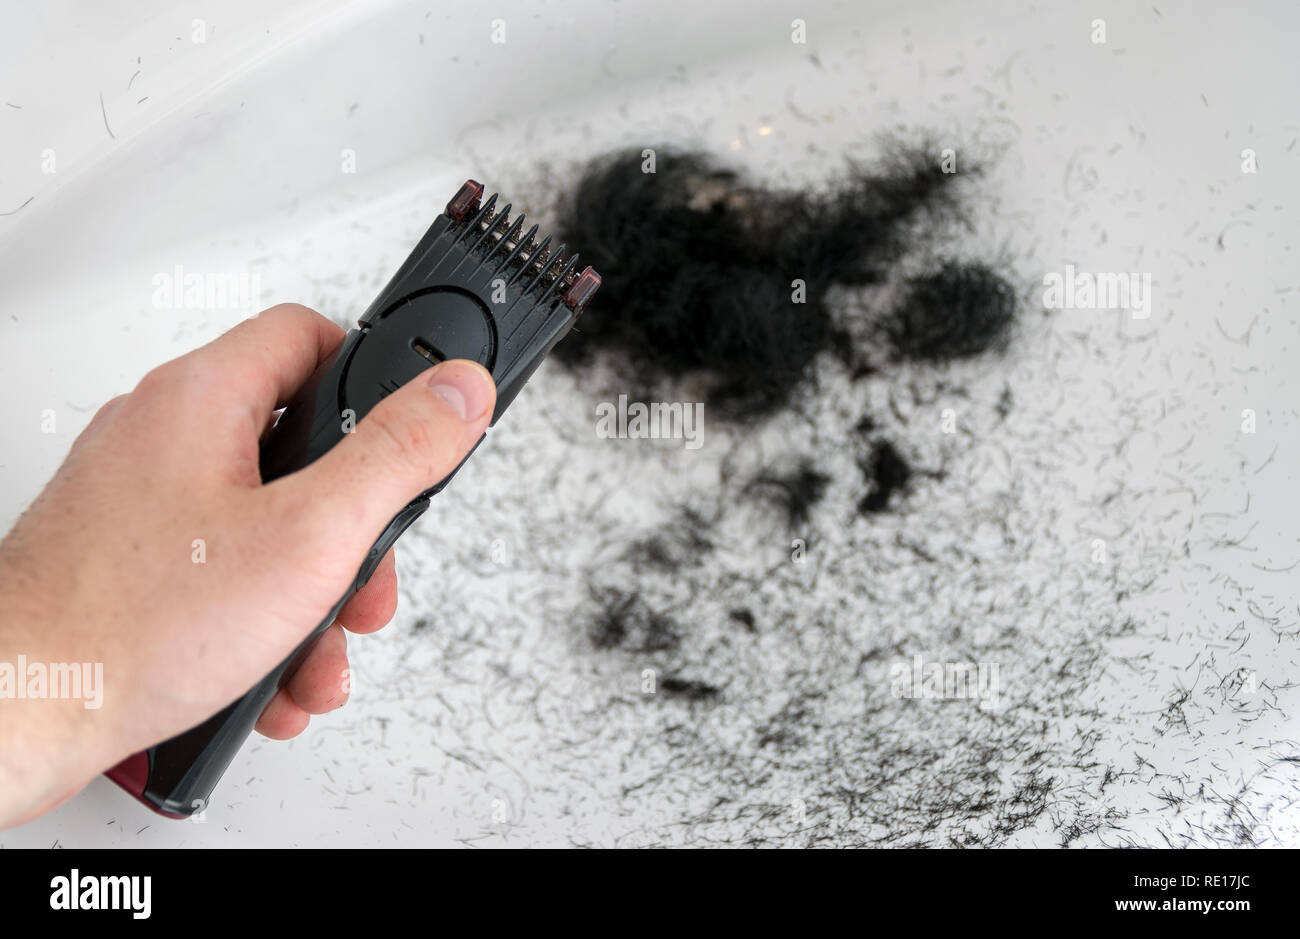 A man after trimming his beard, with the mess left. - Stock Image